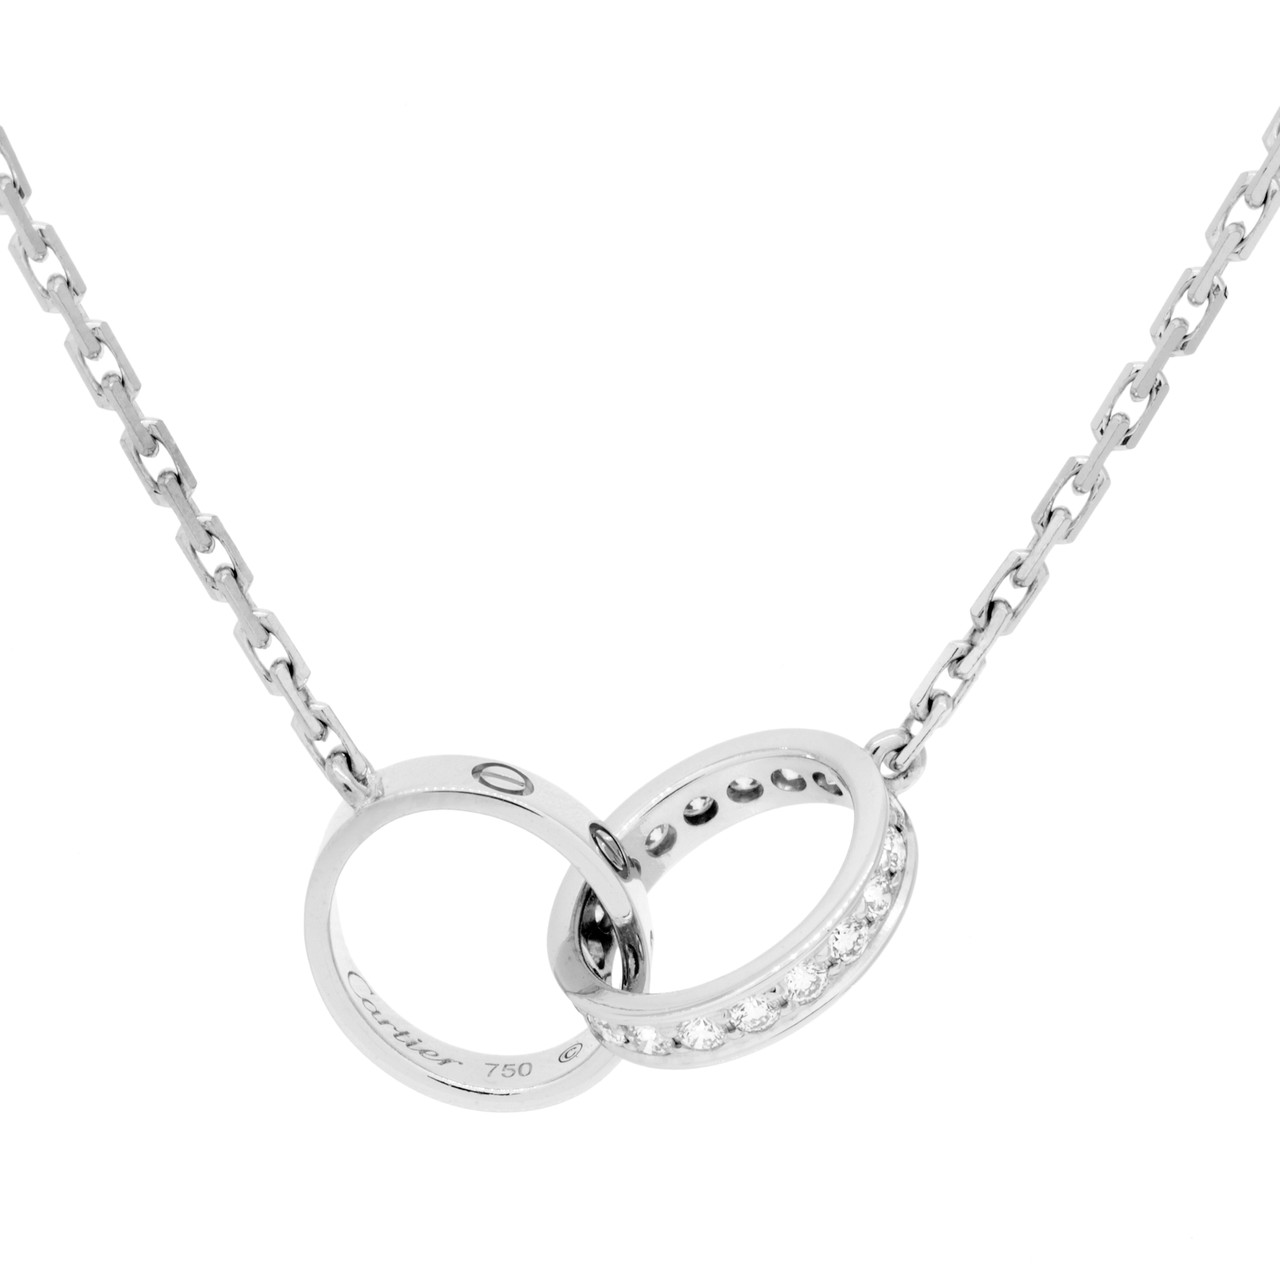 b897a2c1515276 Cartier 18K White Gold & Diamond Love Necklace - modaselle